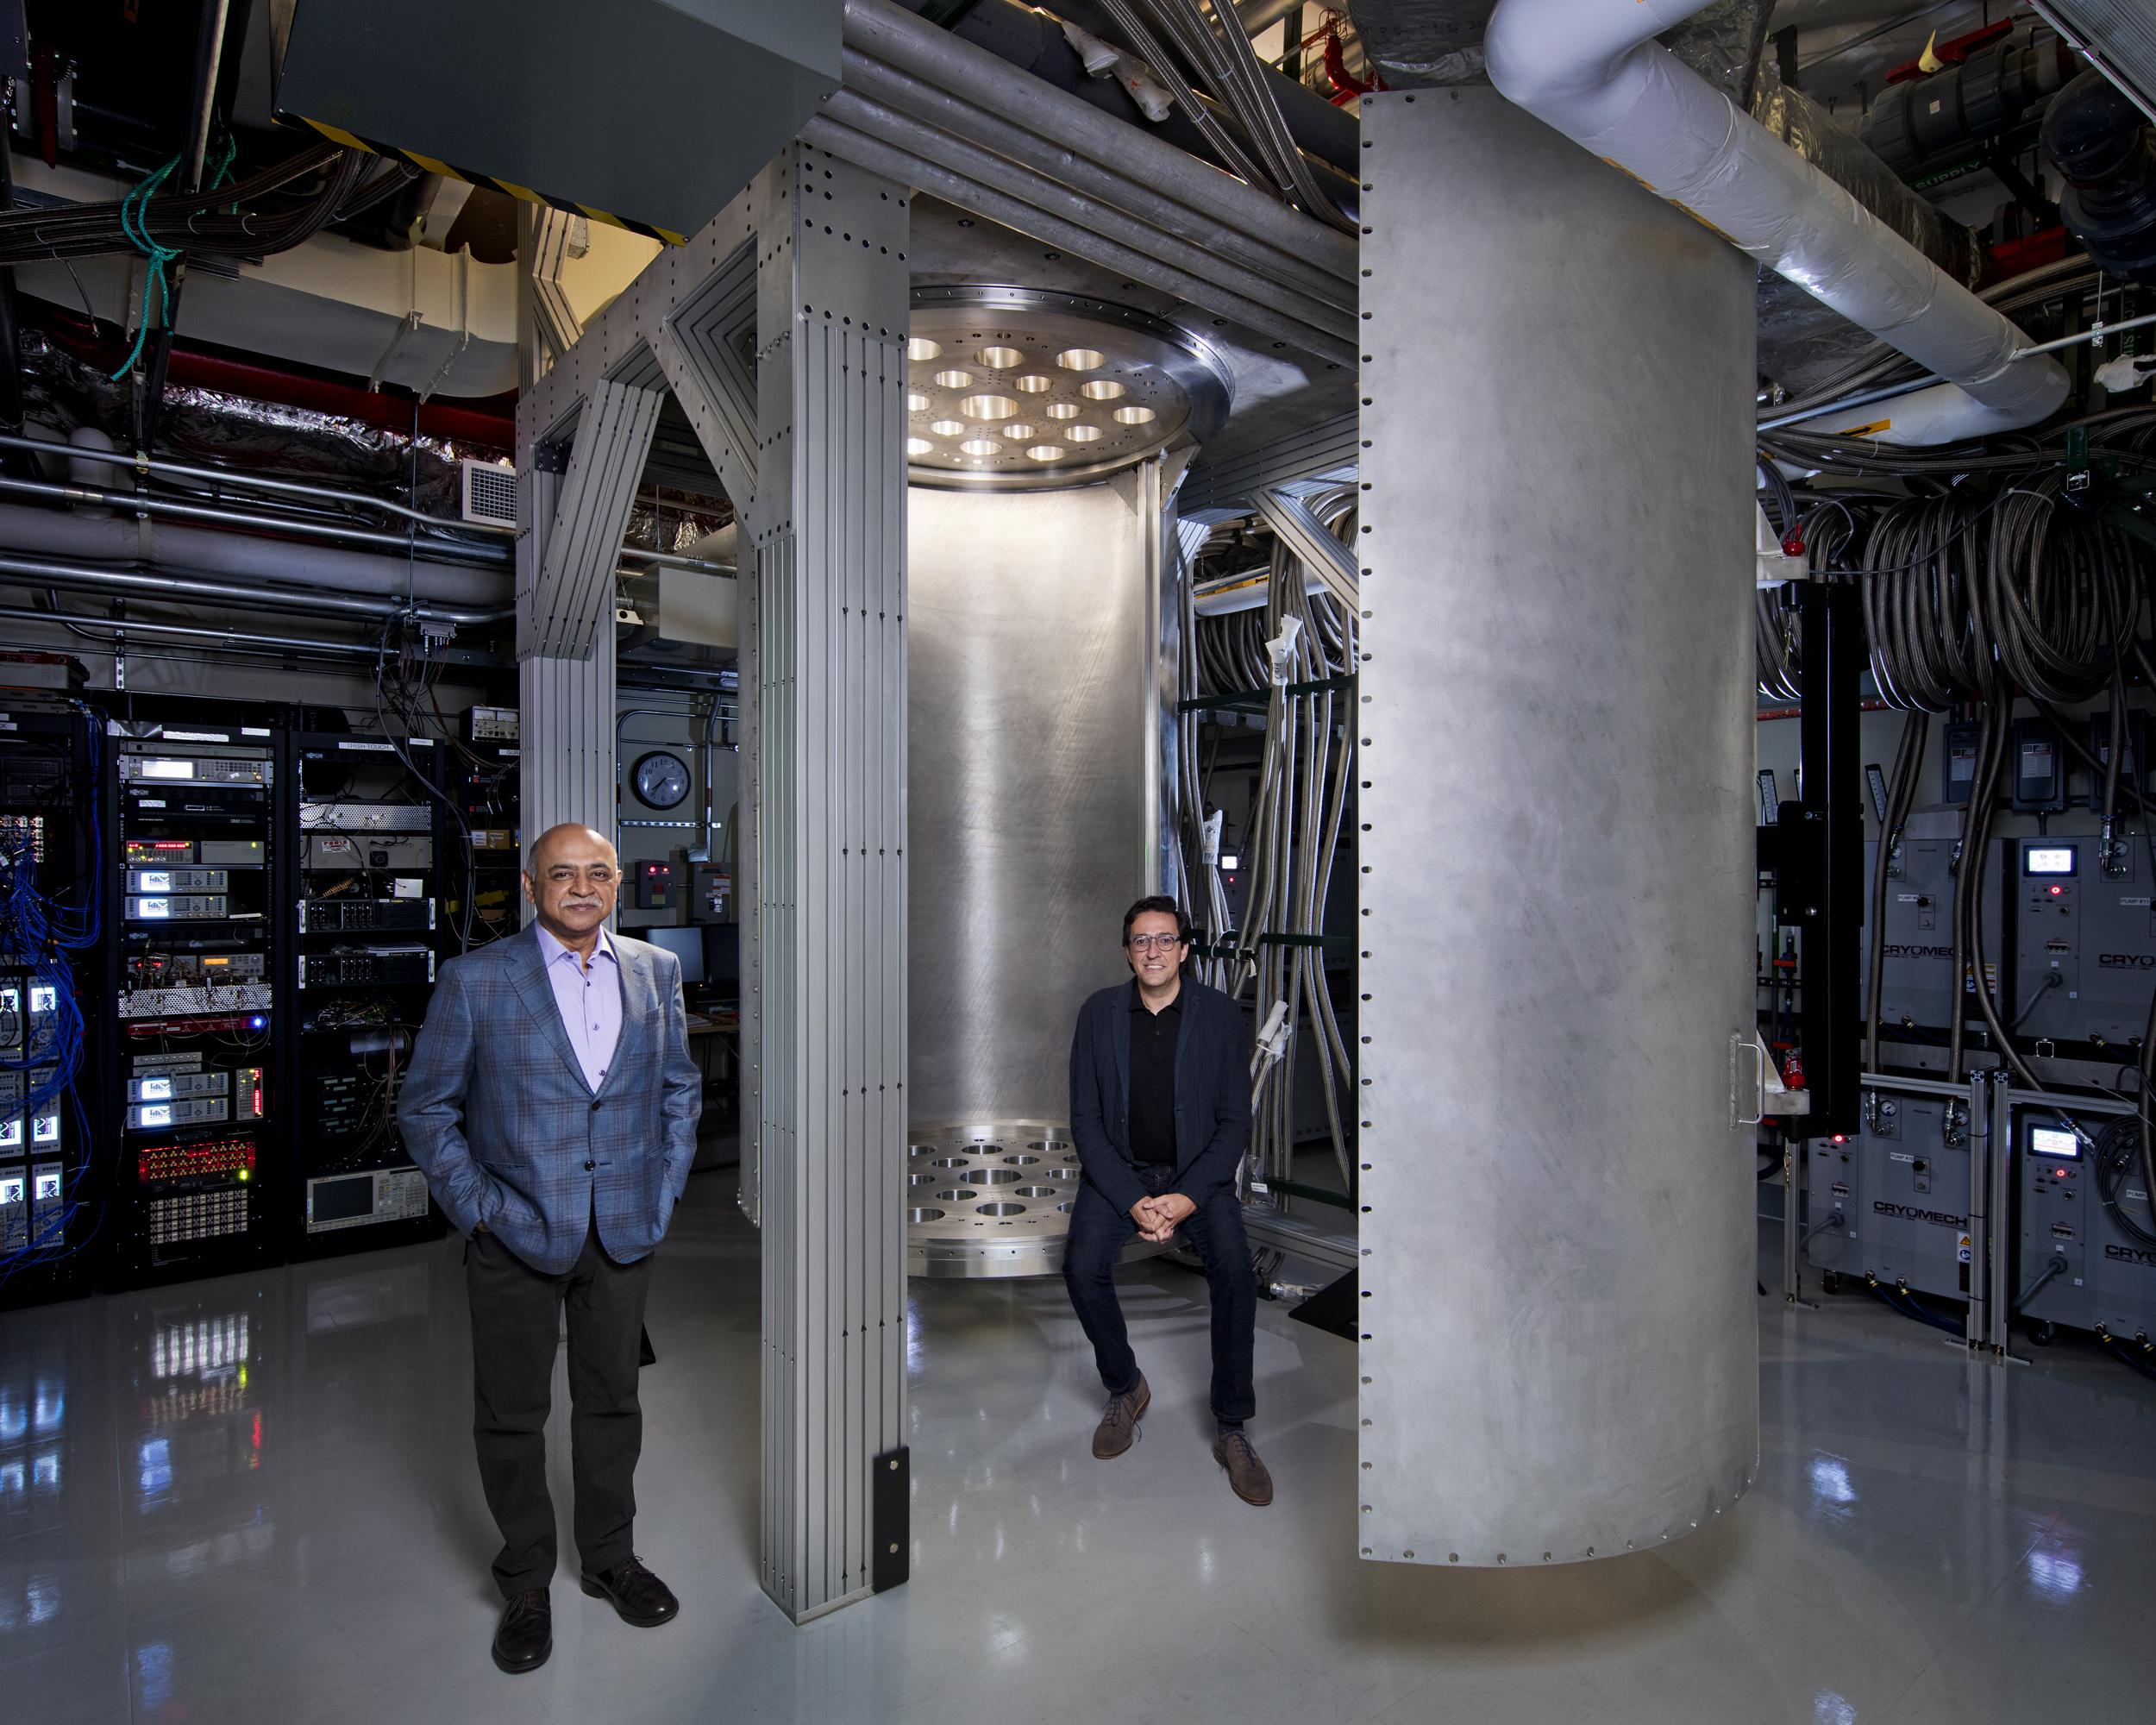 IBM releases strategy to develop a 1,000-qubit quantum processor by 2023